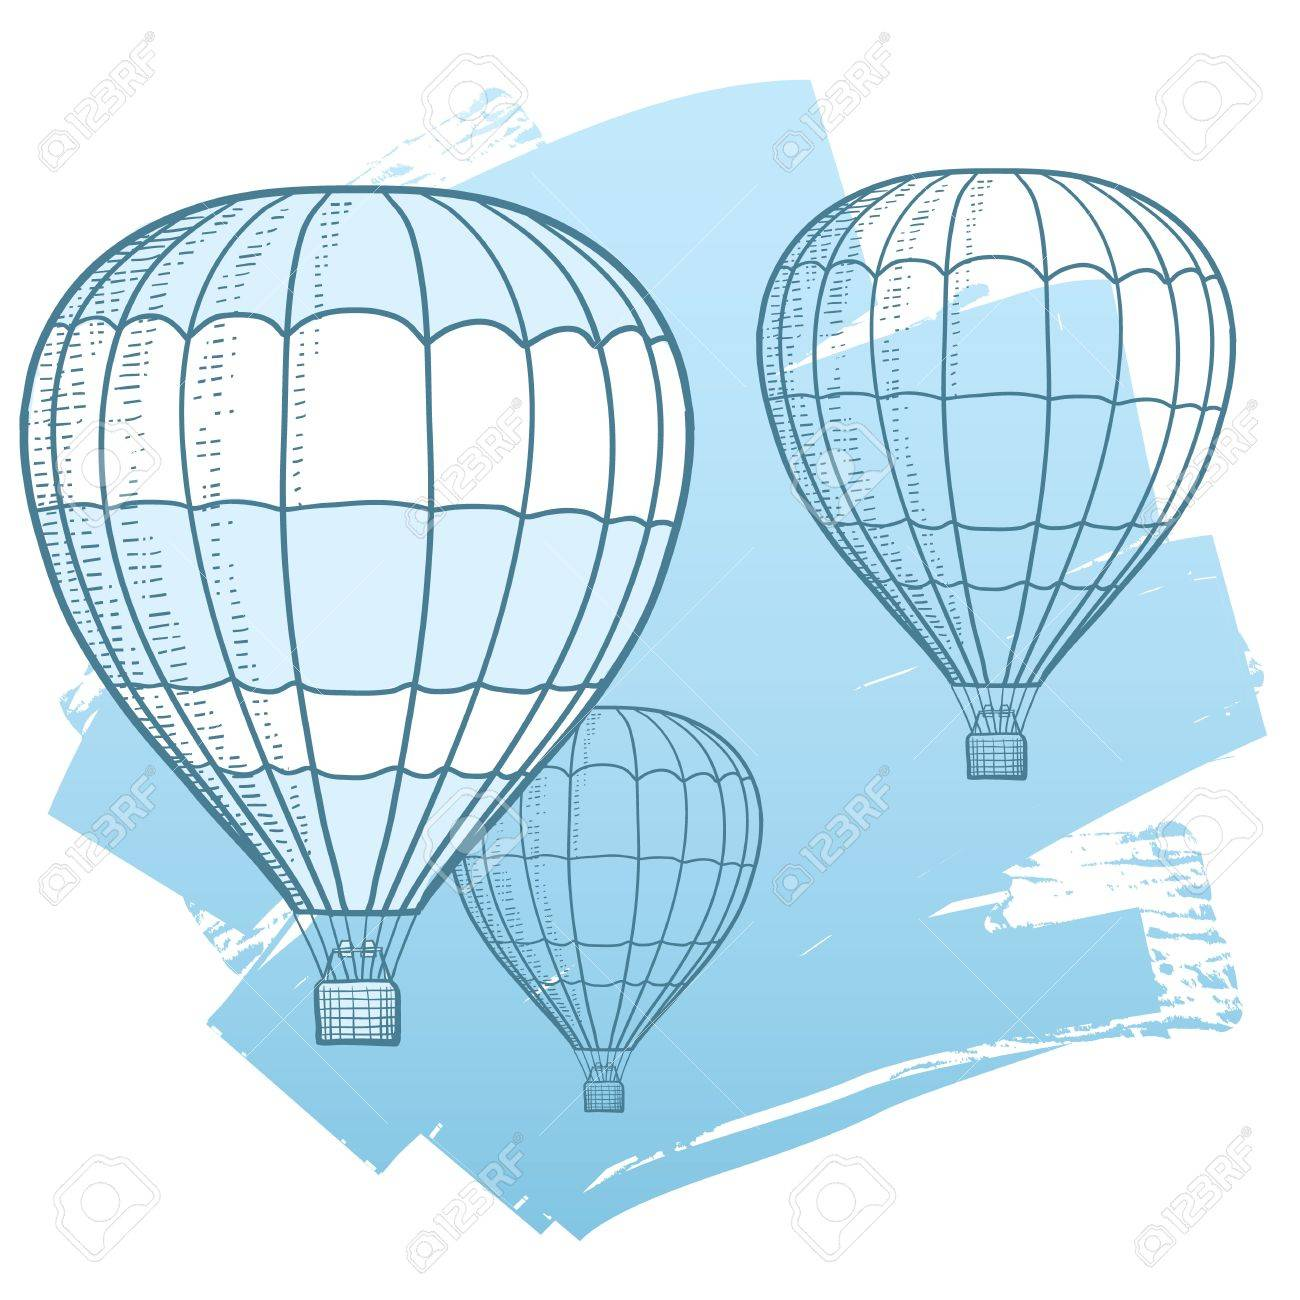 Drawing Illustration of hot air balloons floating in the sky  Represents freedom, travel, mobility, and fun Stock Vector - 13543766